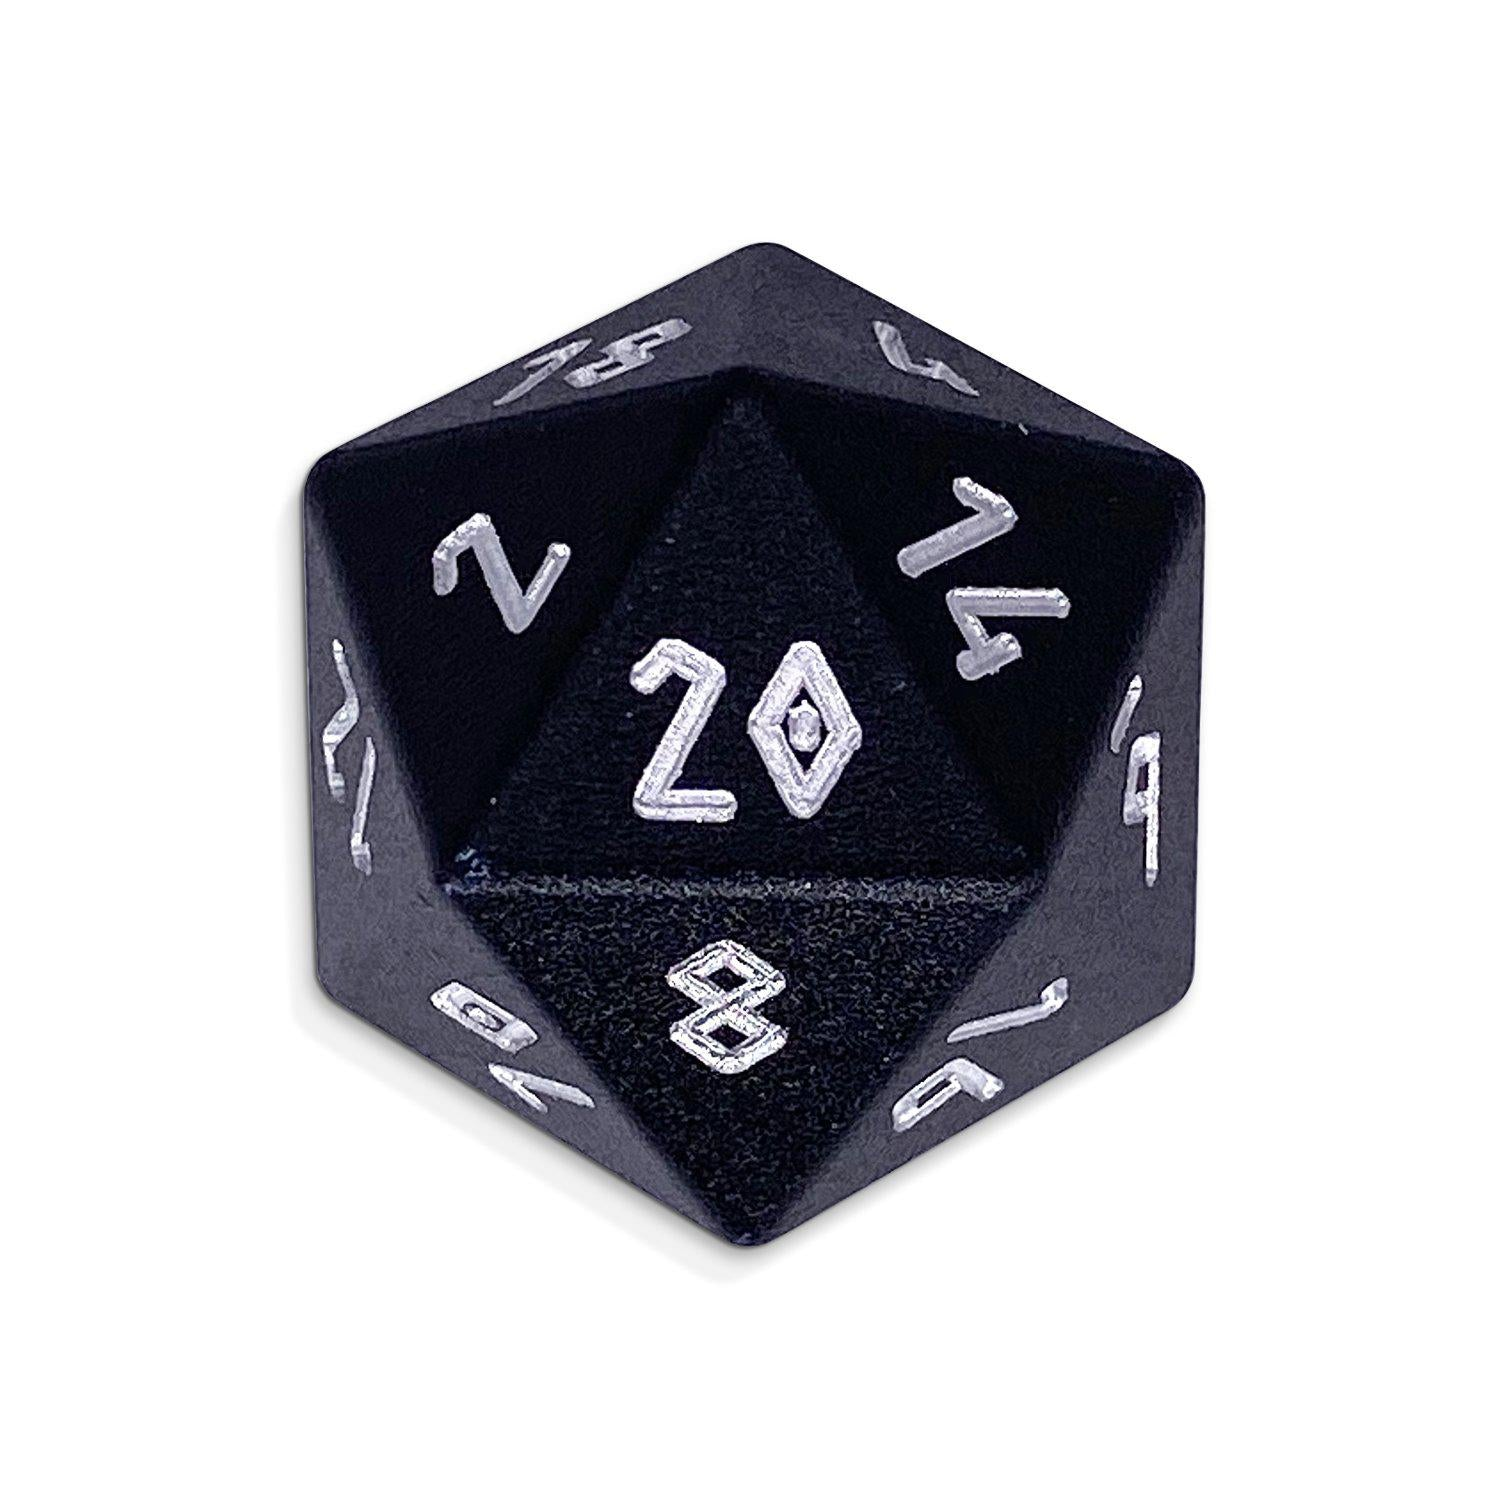 Night Black - Single D20 - Aluminum Dice